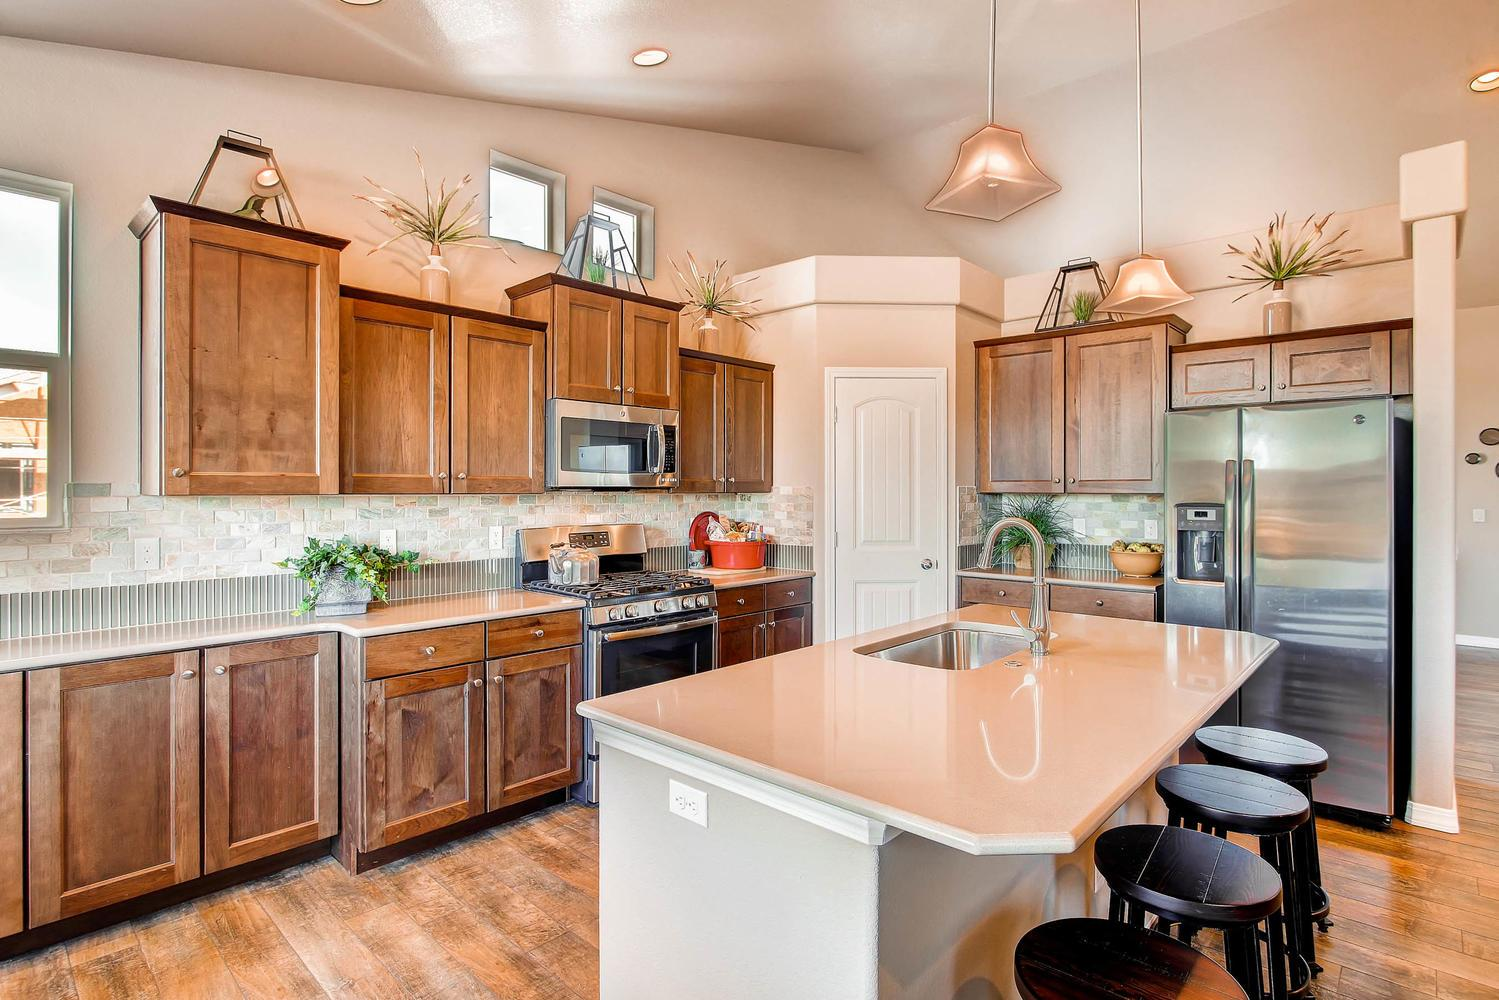 Kitchen featured in the Savannah By Classic Homes in Colorado Springs, CO